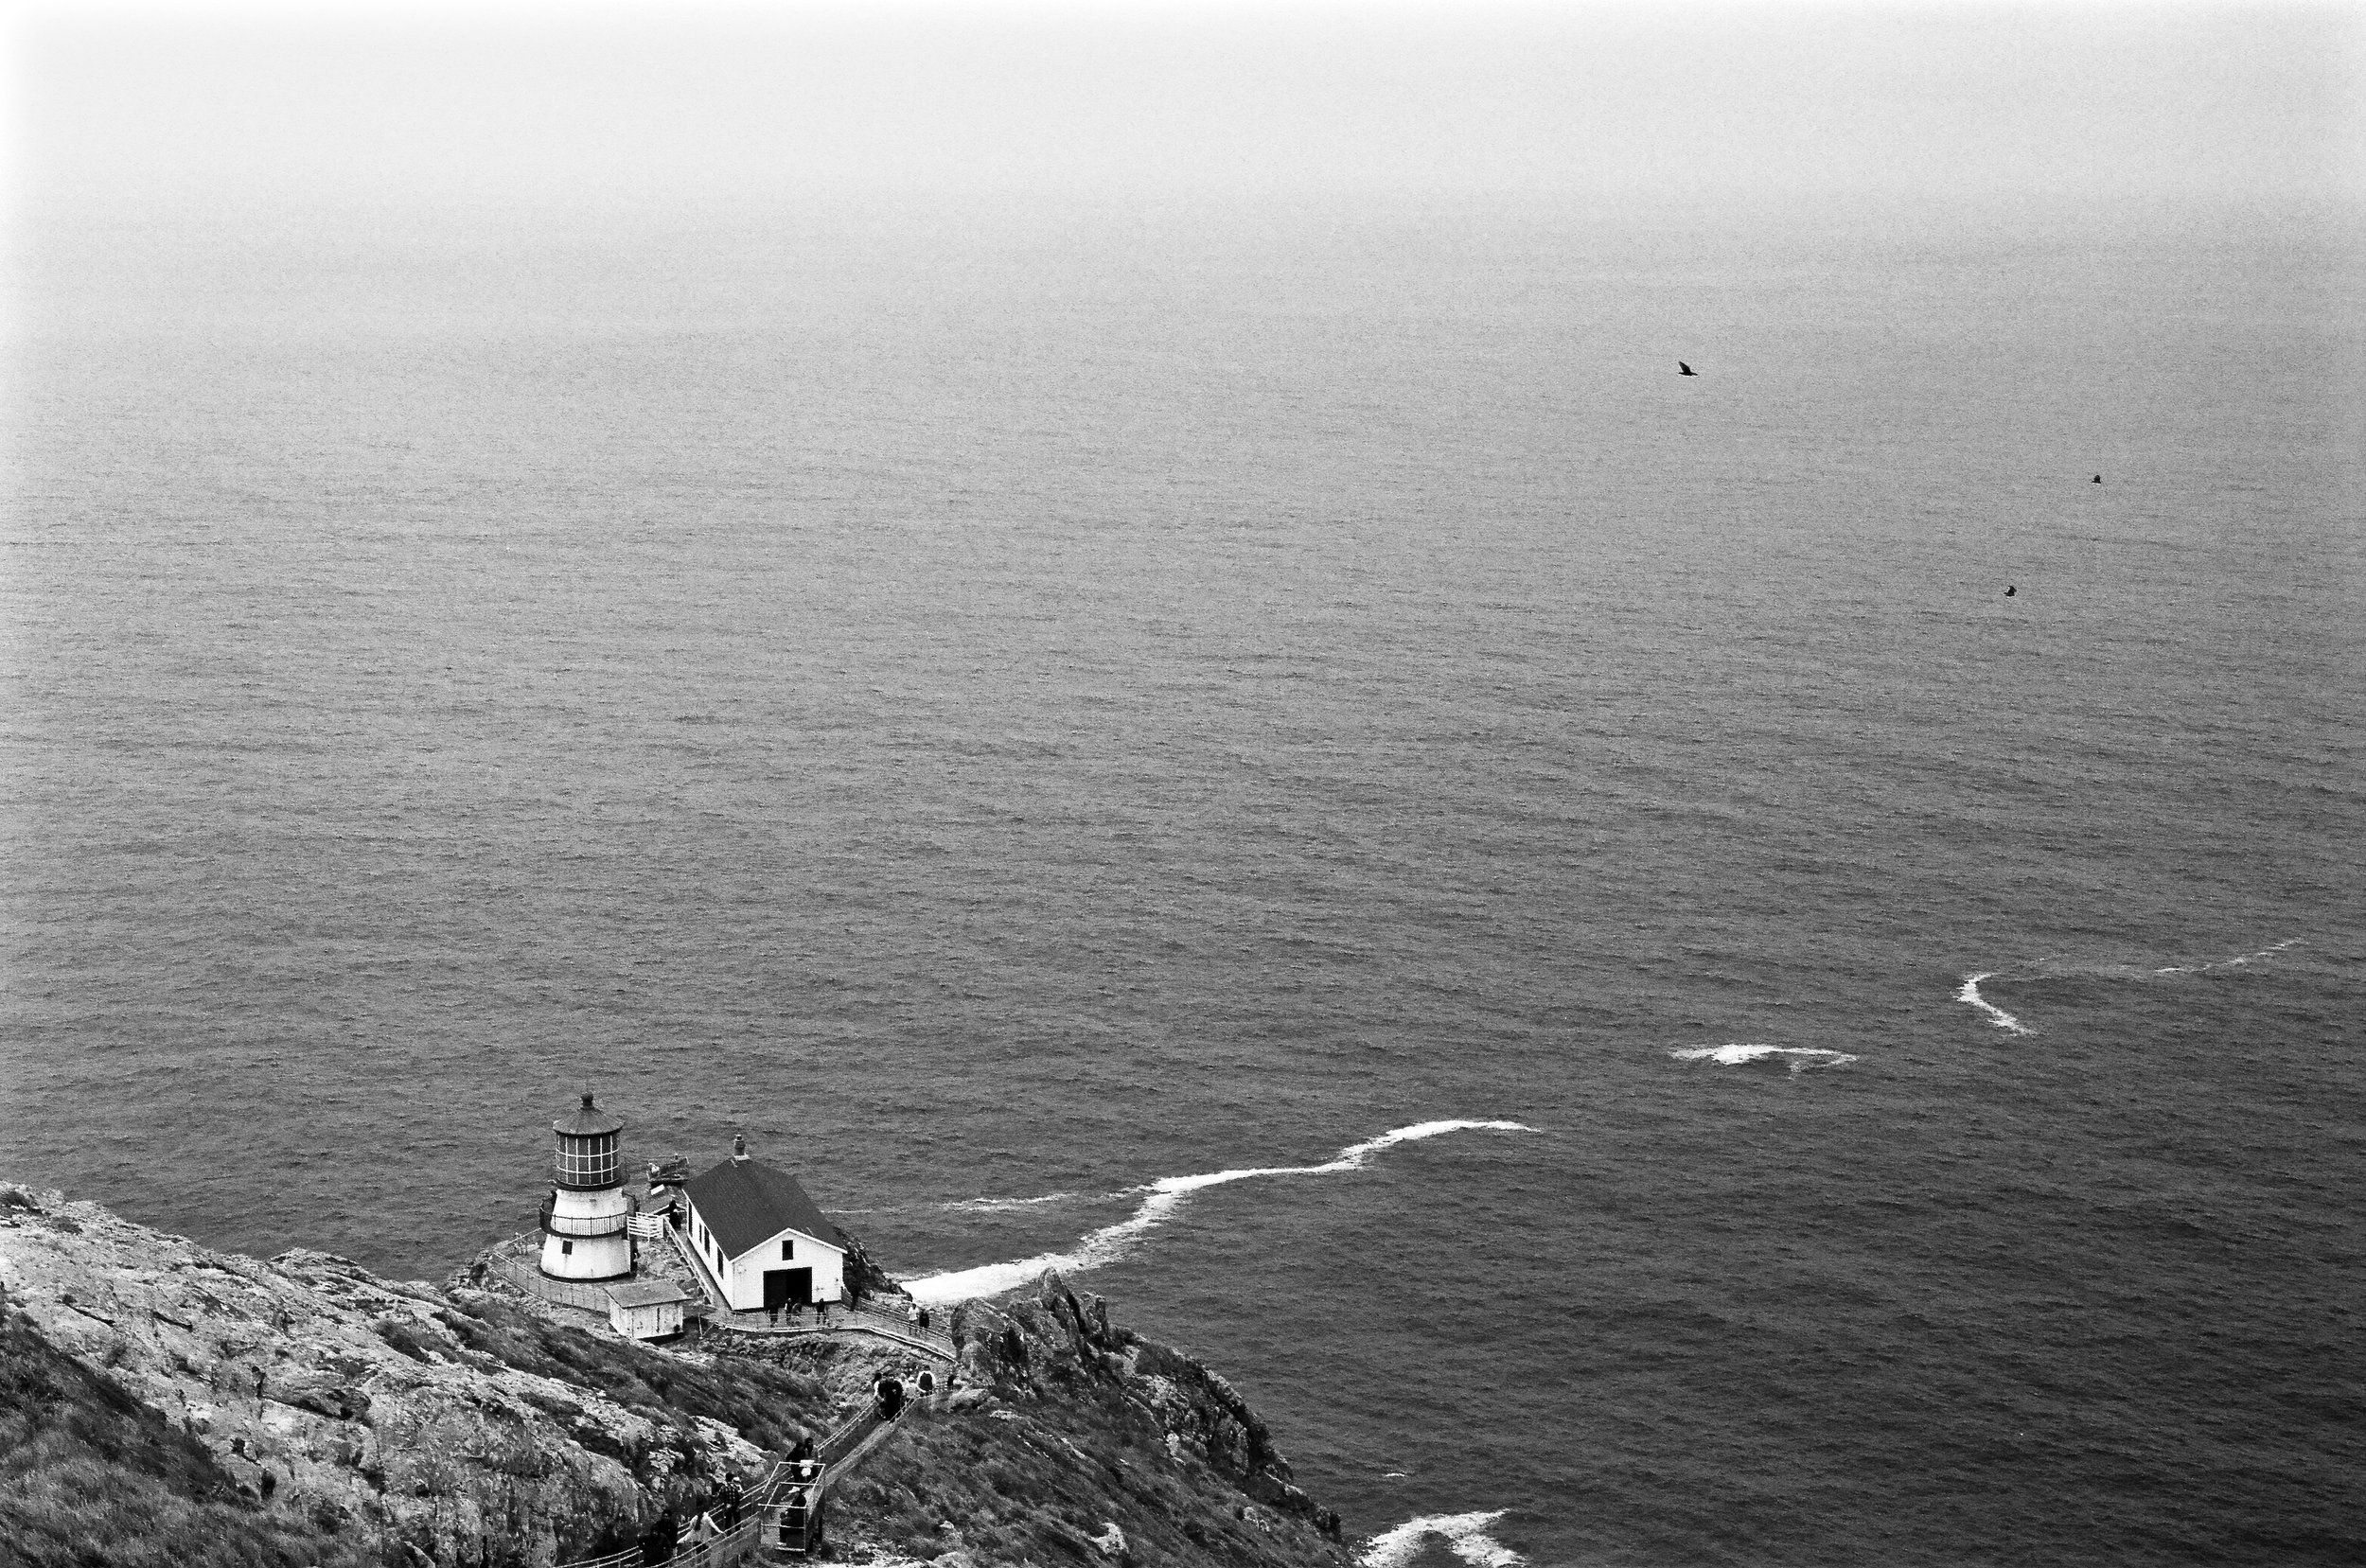 My style is certainly influenced quite a bit by where I live. (Pt Reyes Lighthouse, Leica M2, Acros film)